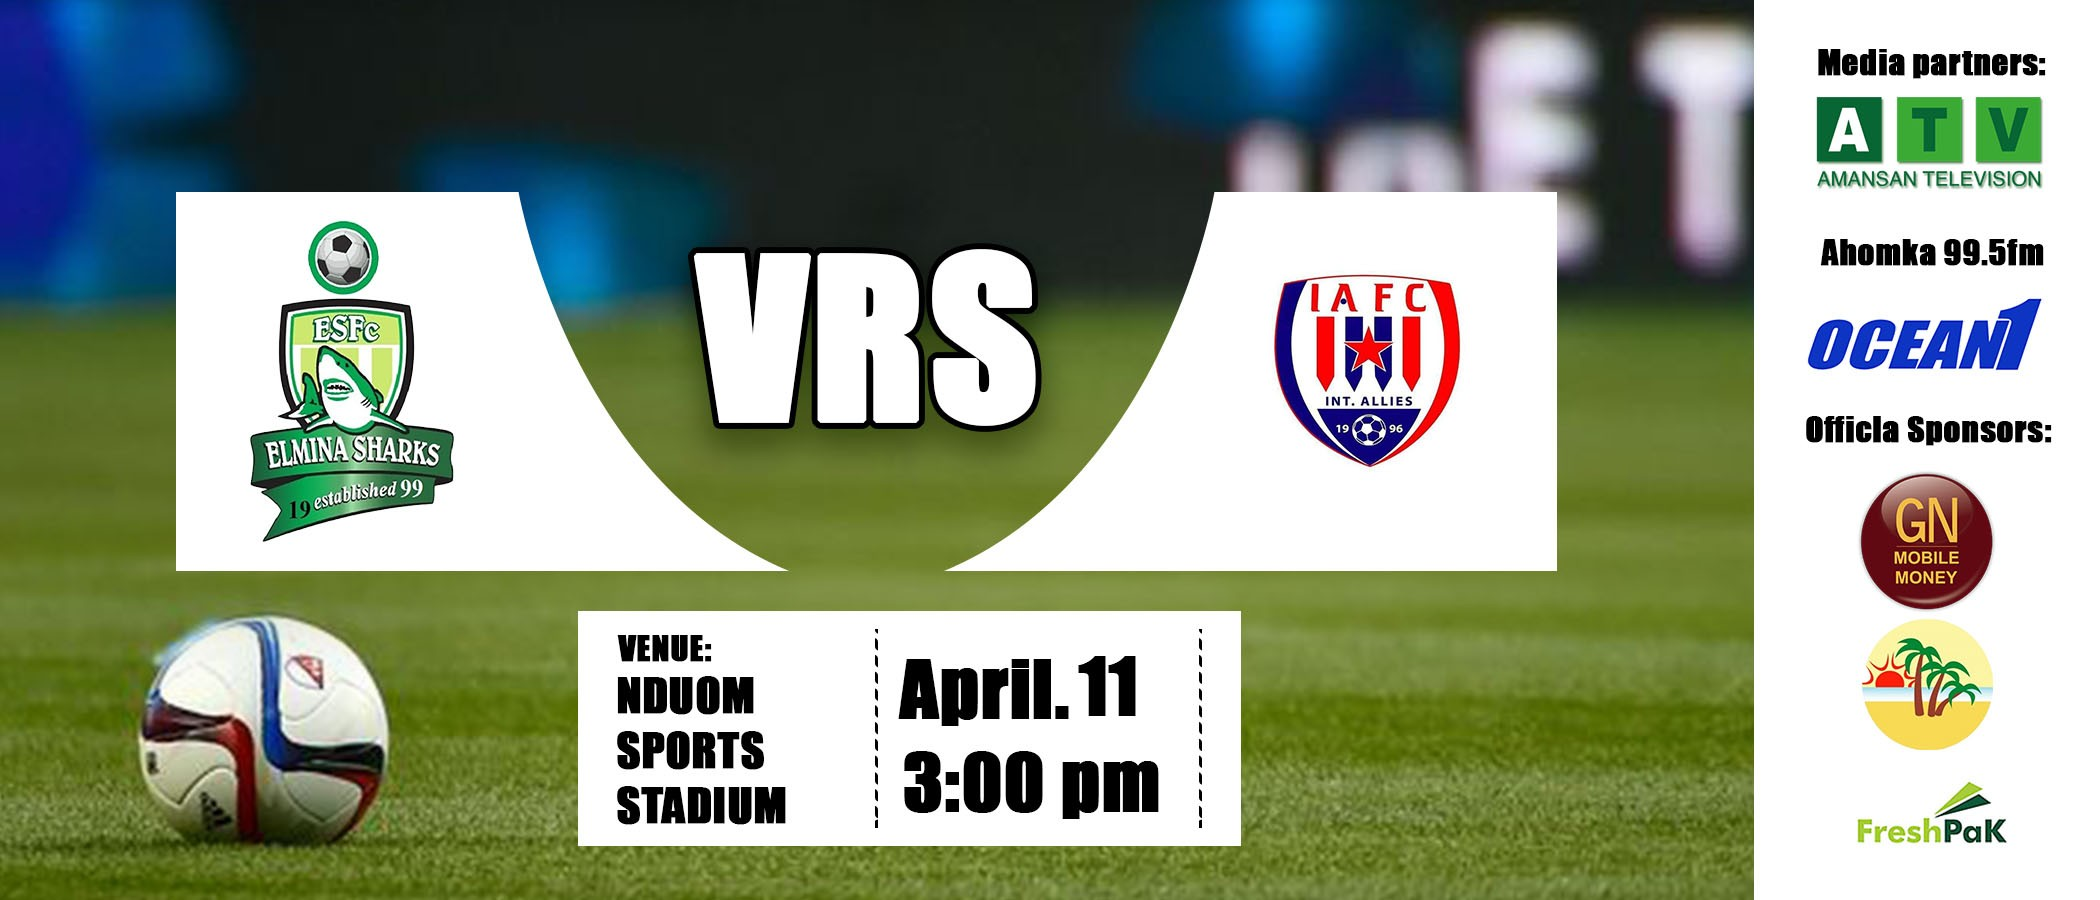 Sharks seek first victory over Inter Allies today